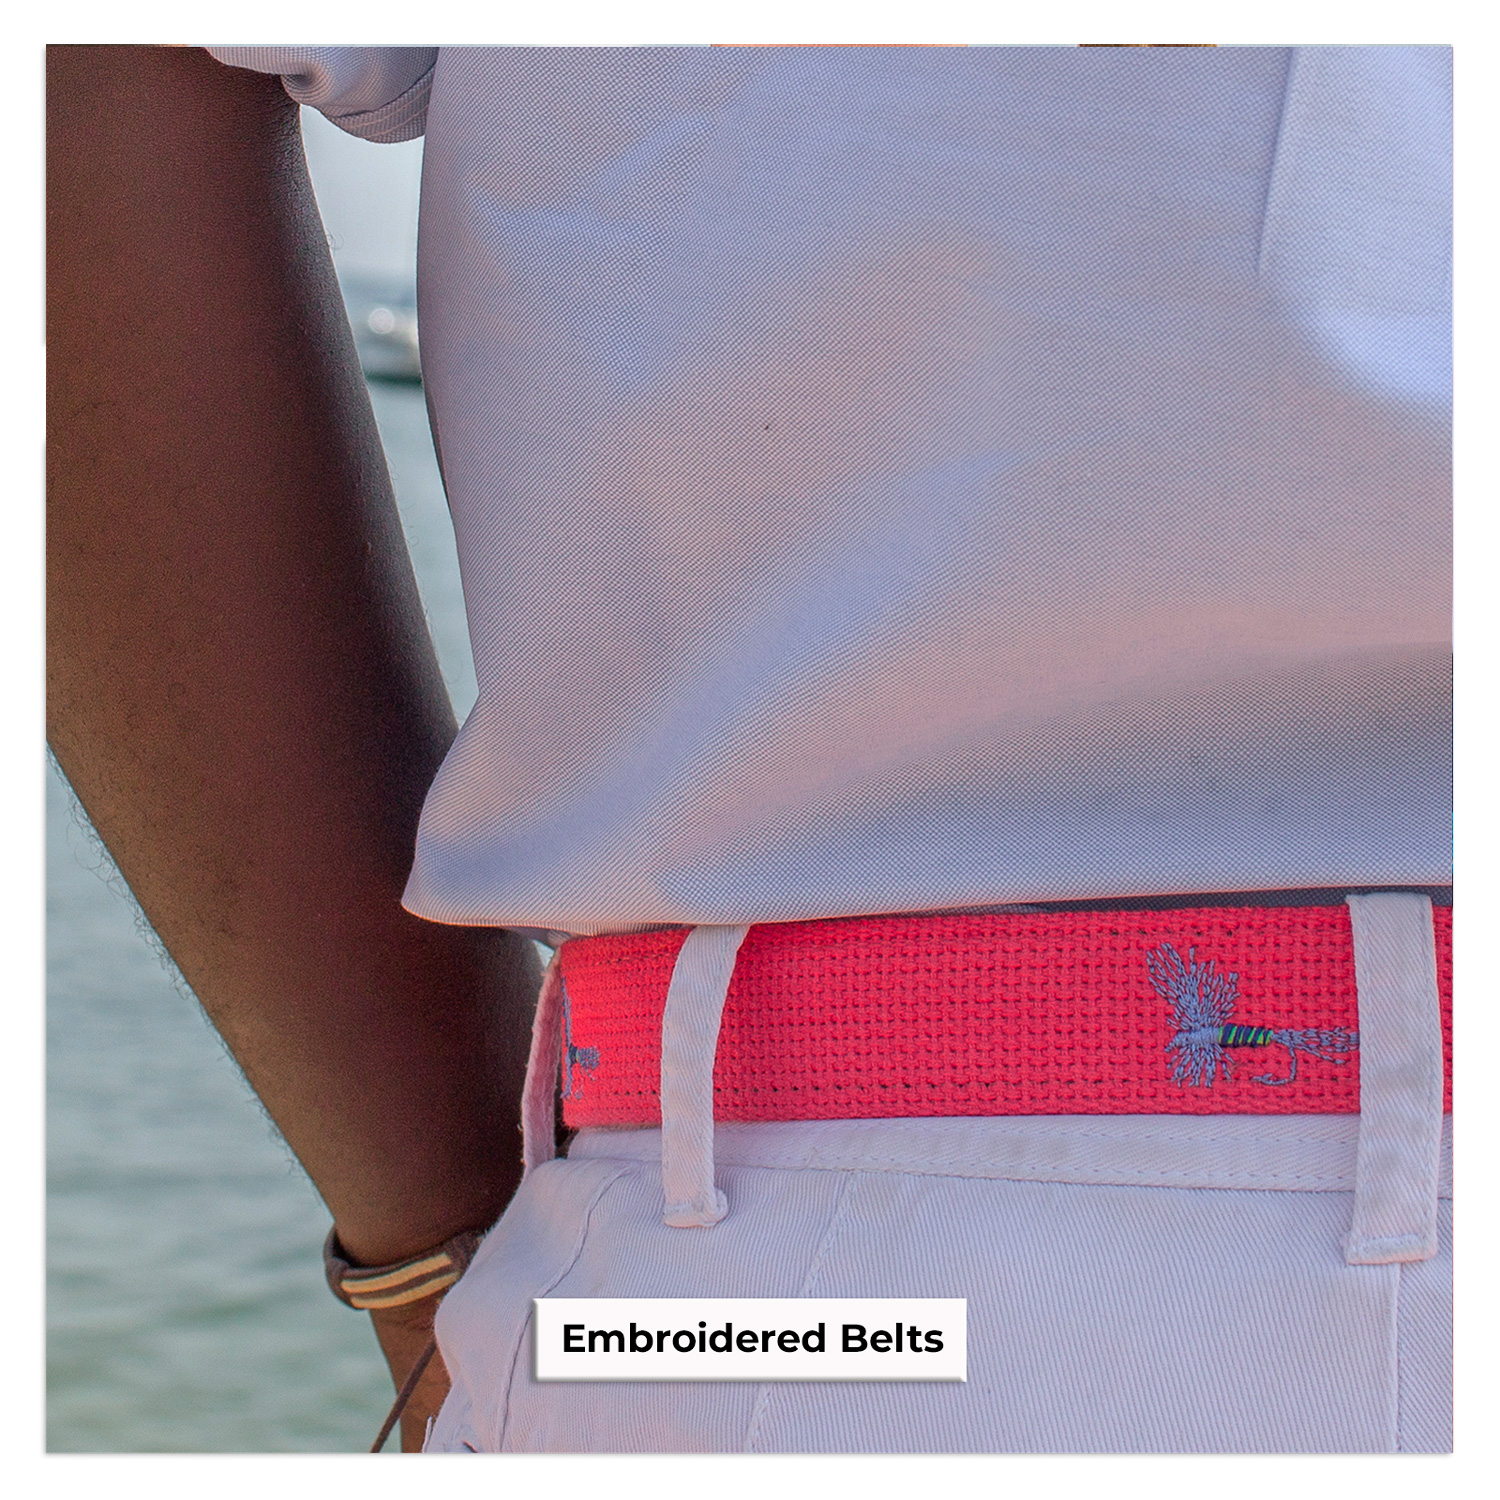 Fly Embroidered Belt Pink Shorts